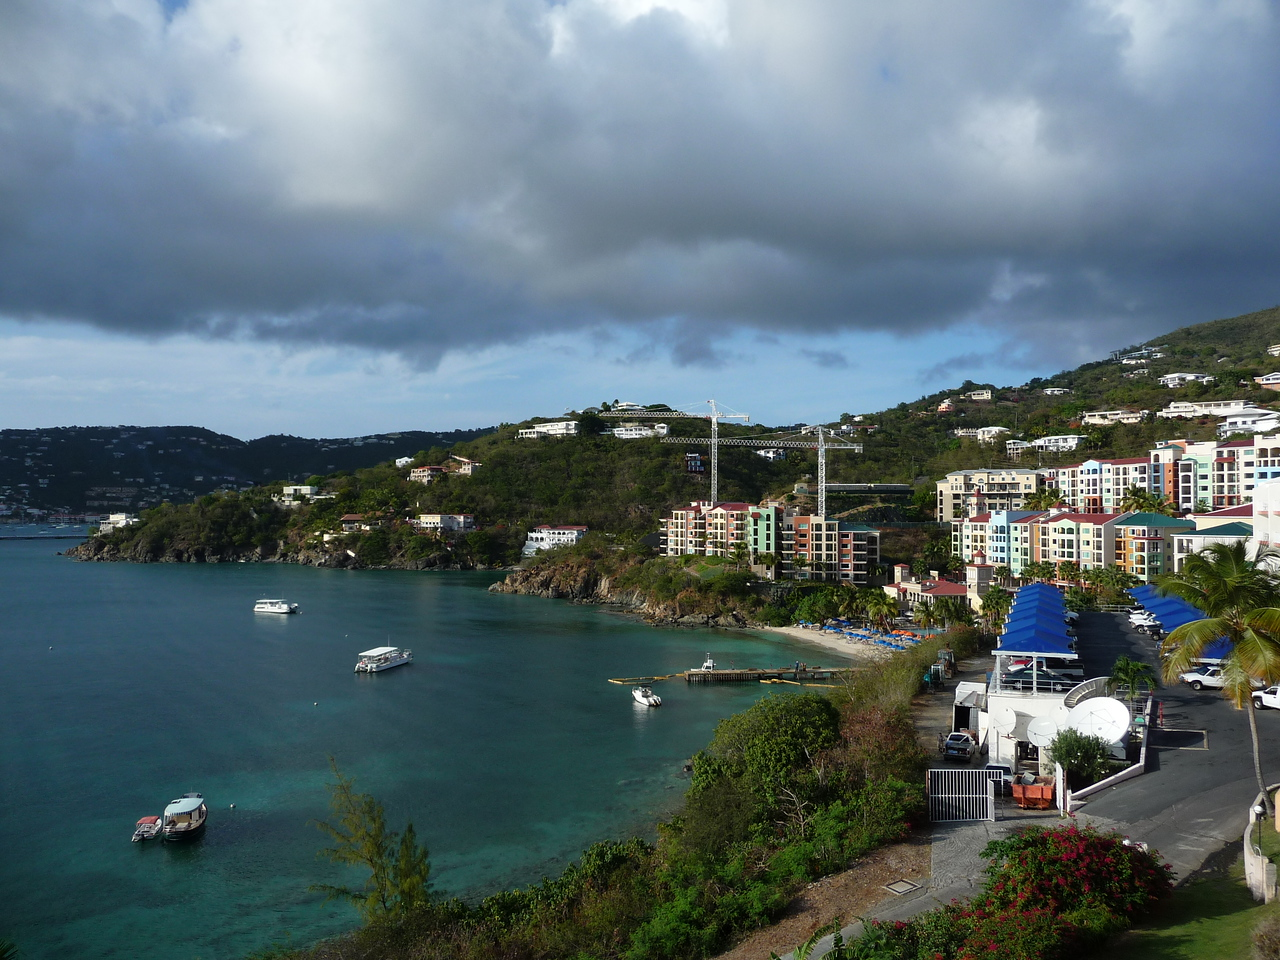 View from Rumbar outdoor patio at the Frenchmans Reef--looking to the right.